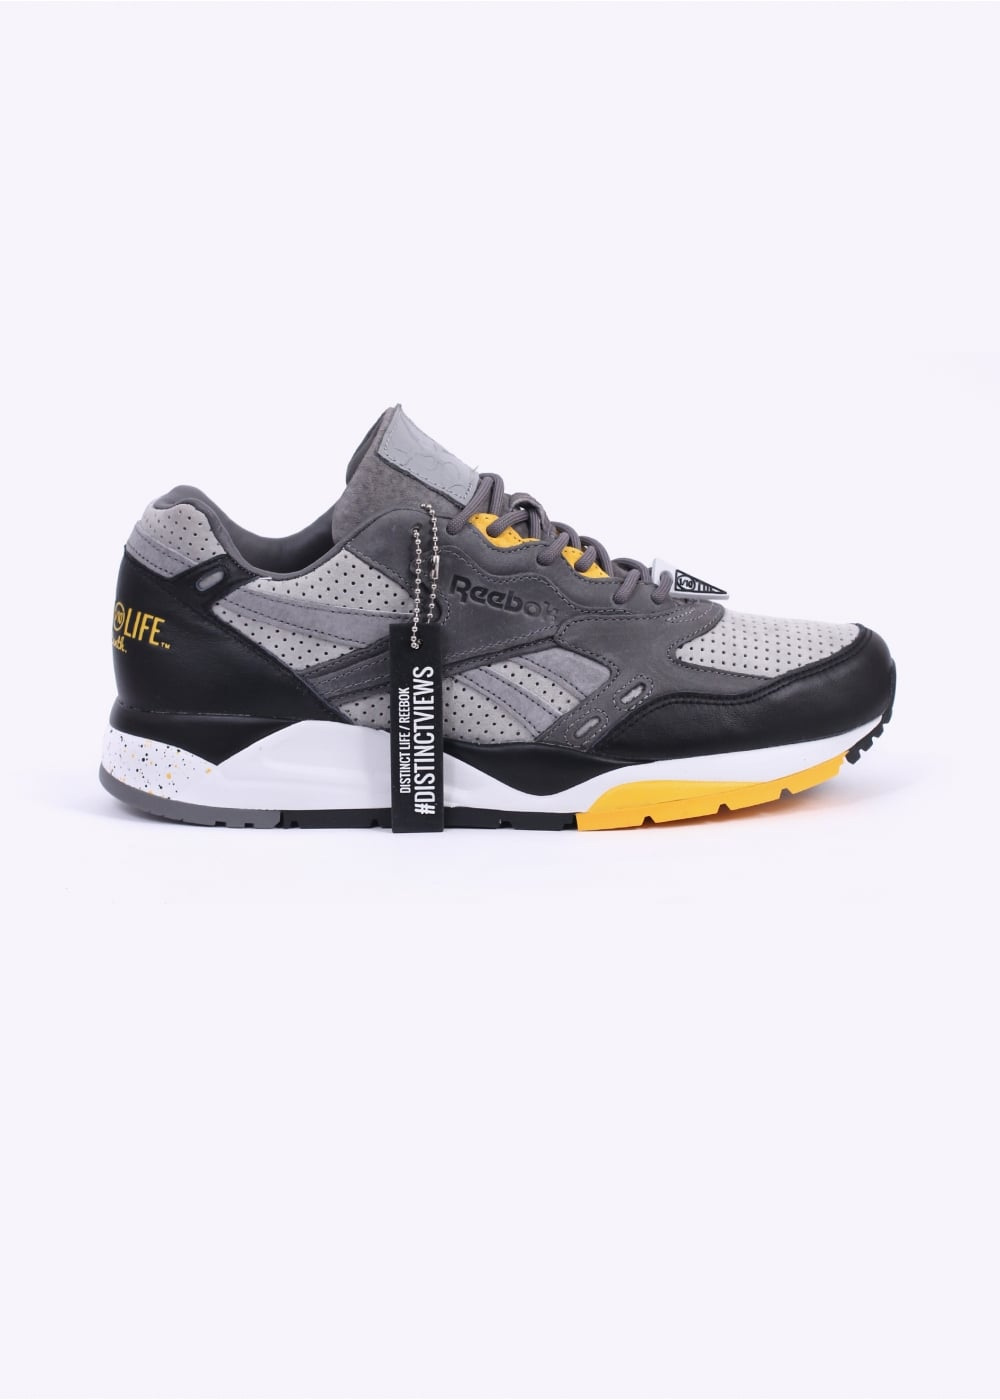 ef7a7eef1ee Reebok x Distinct Life Bolton DV  Distinct Views - Detroit  Trainers - Tin  ...